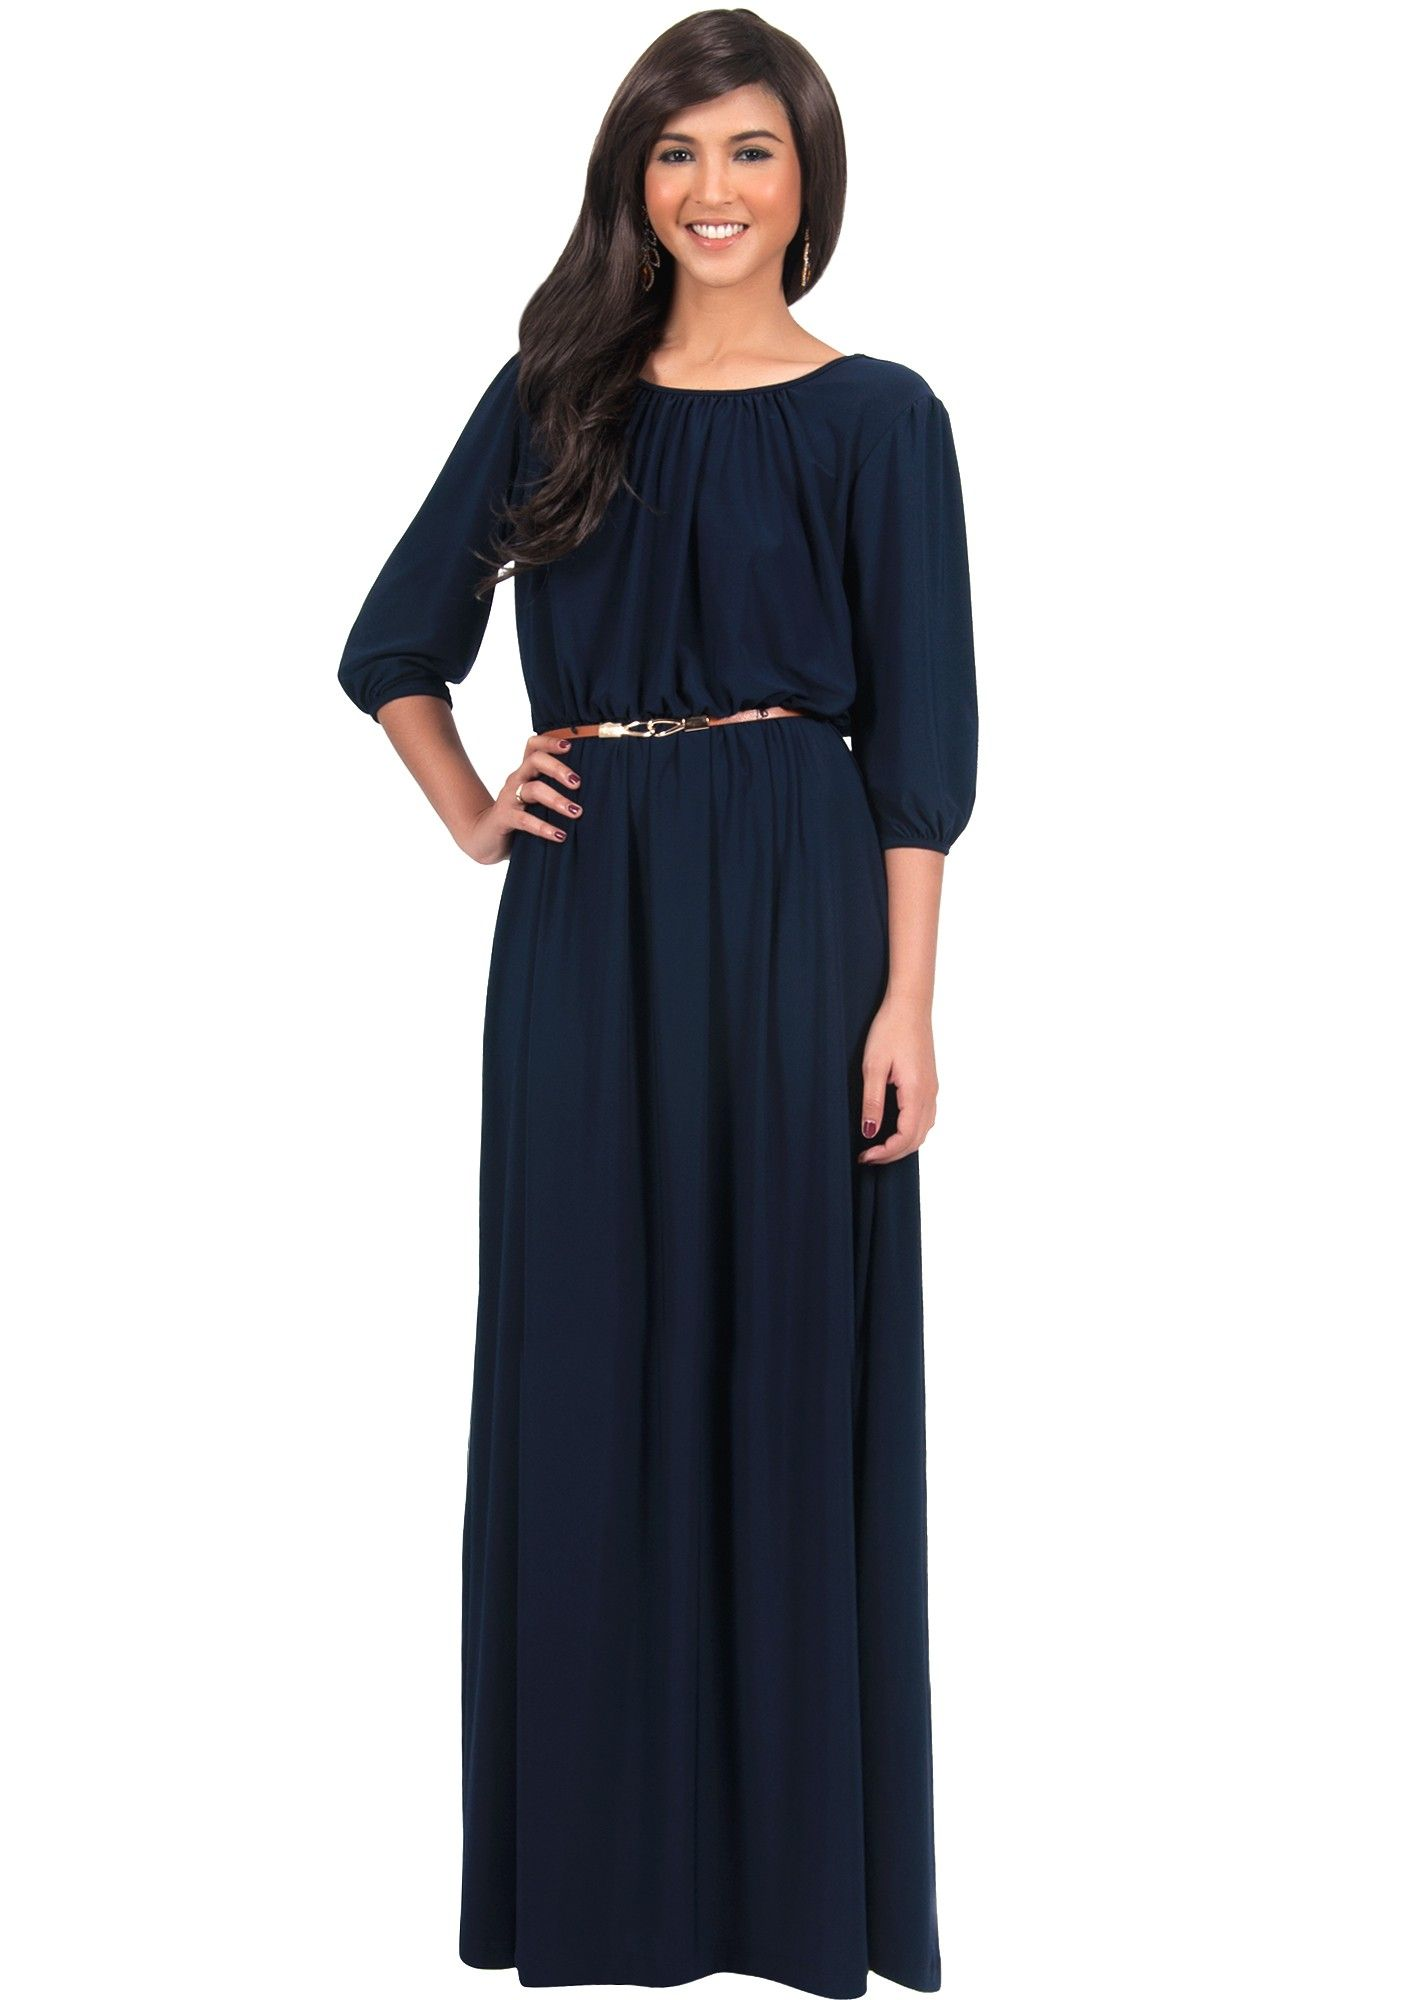 4c5d1b4a599dc IVY - Long 3/4 Sleeve Pleated Dressy Modest Peasant Maxi Dress Gown ...